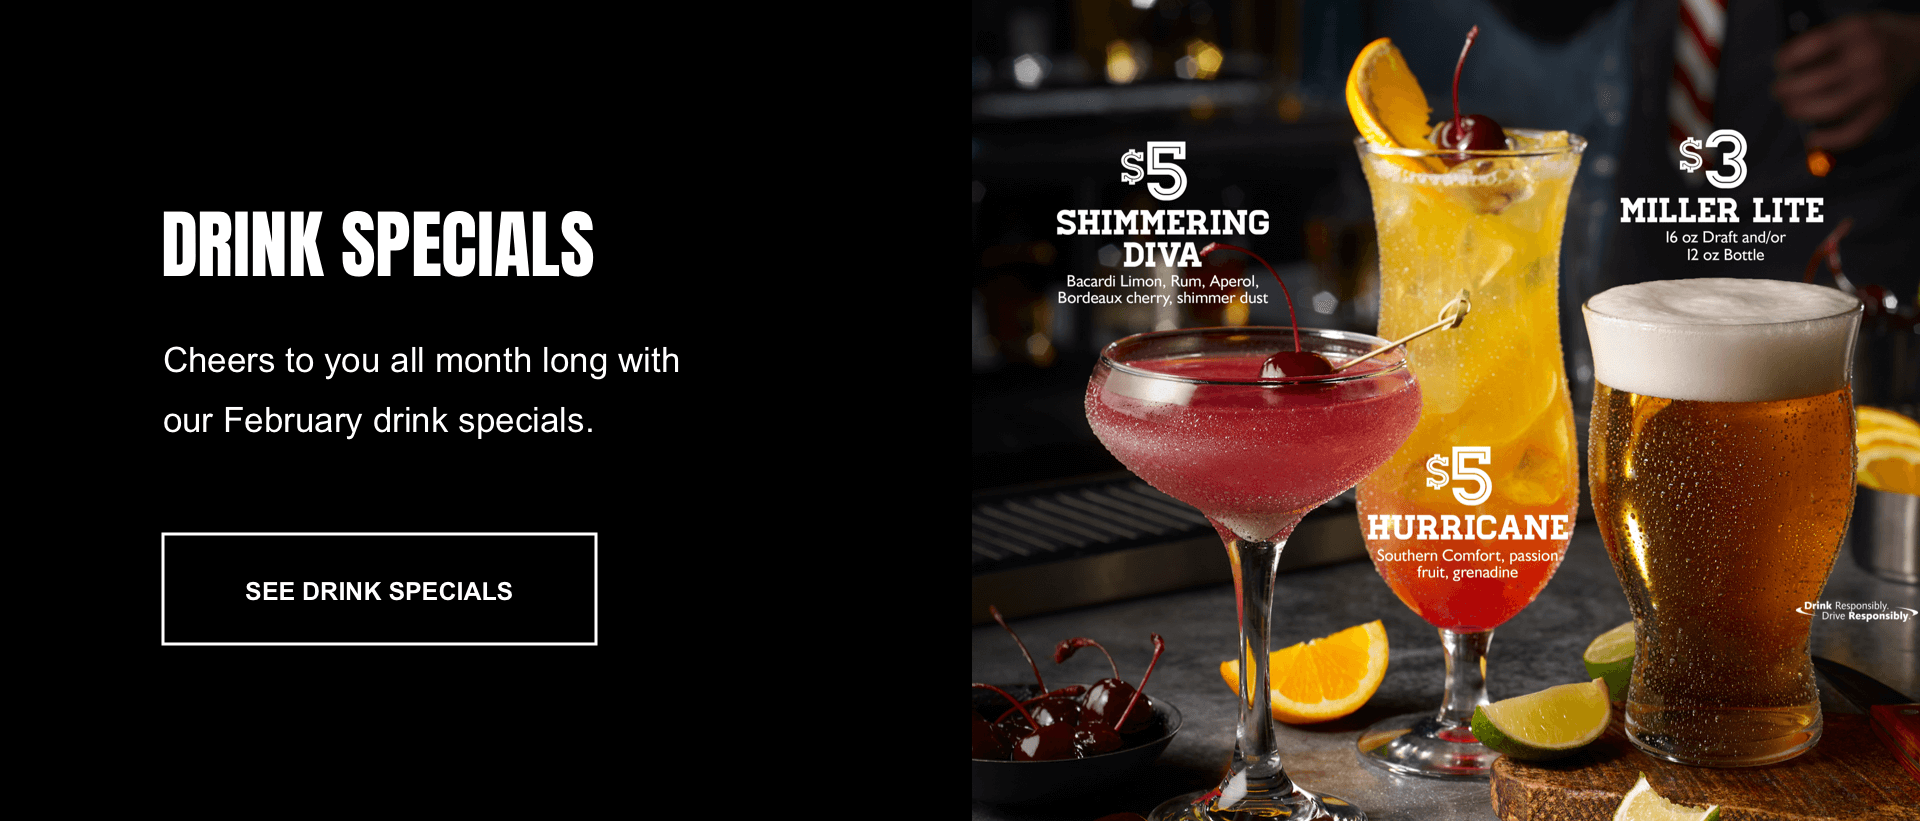 Section 3 redesign concept of TGI Fridays' website.